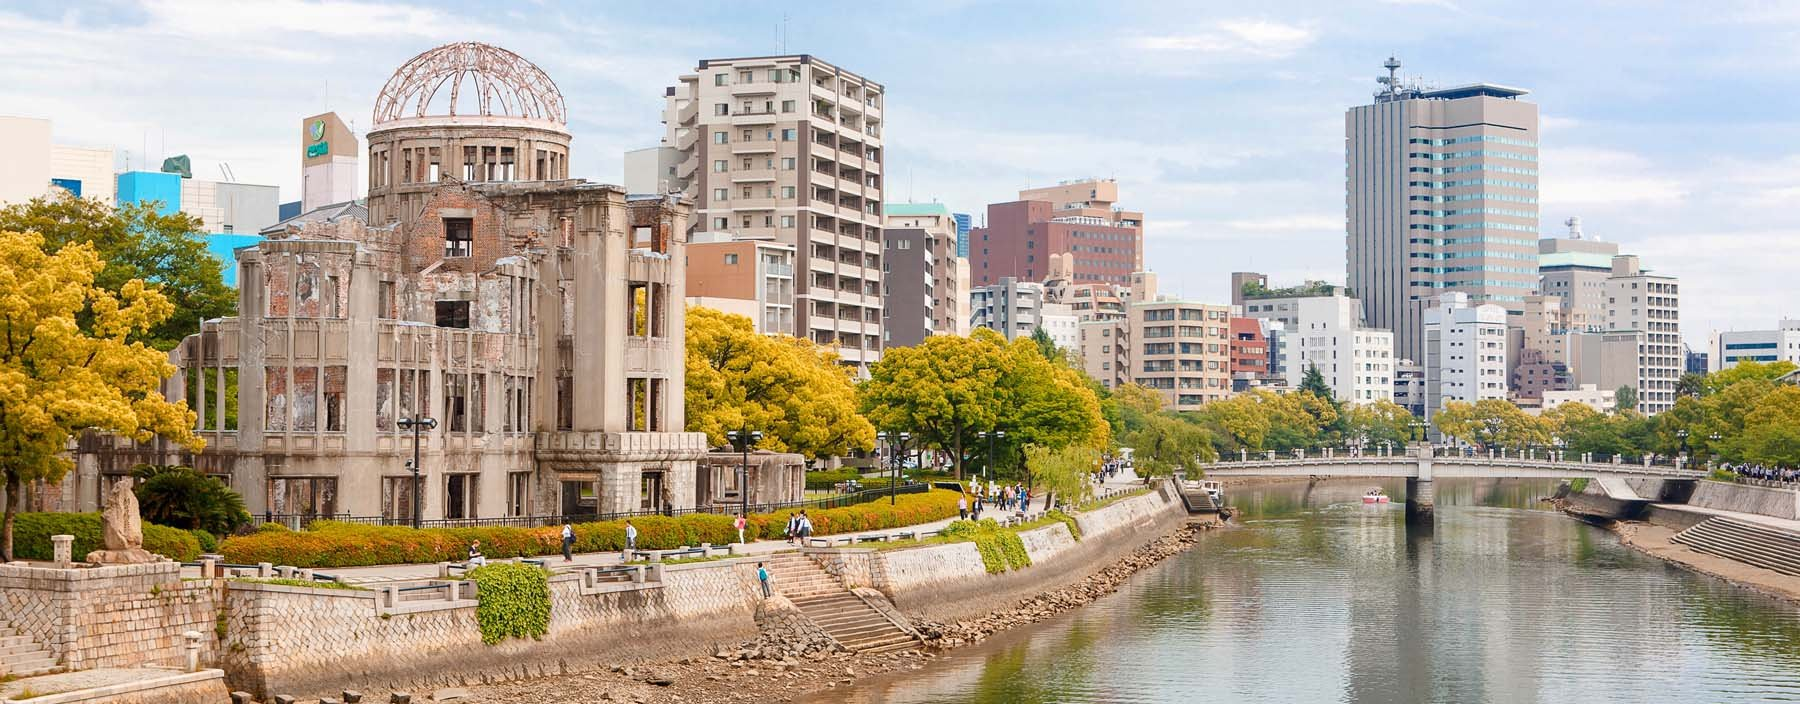 jp, hiroshima, atomic bomb dome memorial building (2).jpg